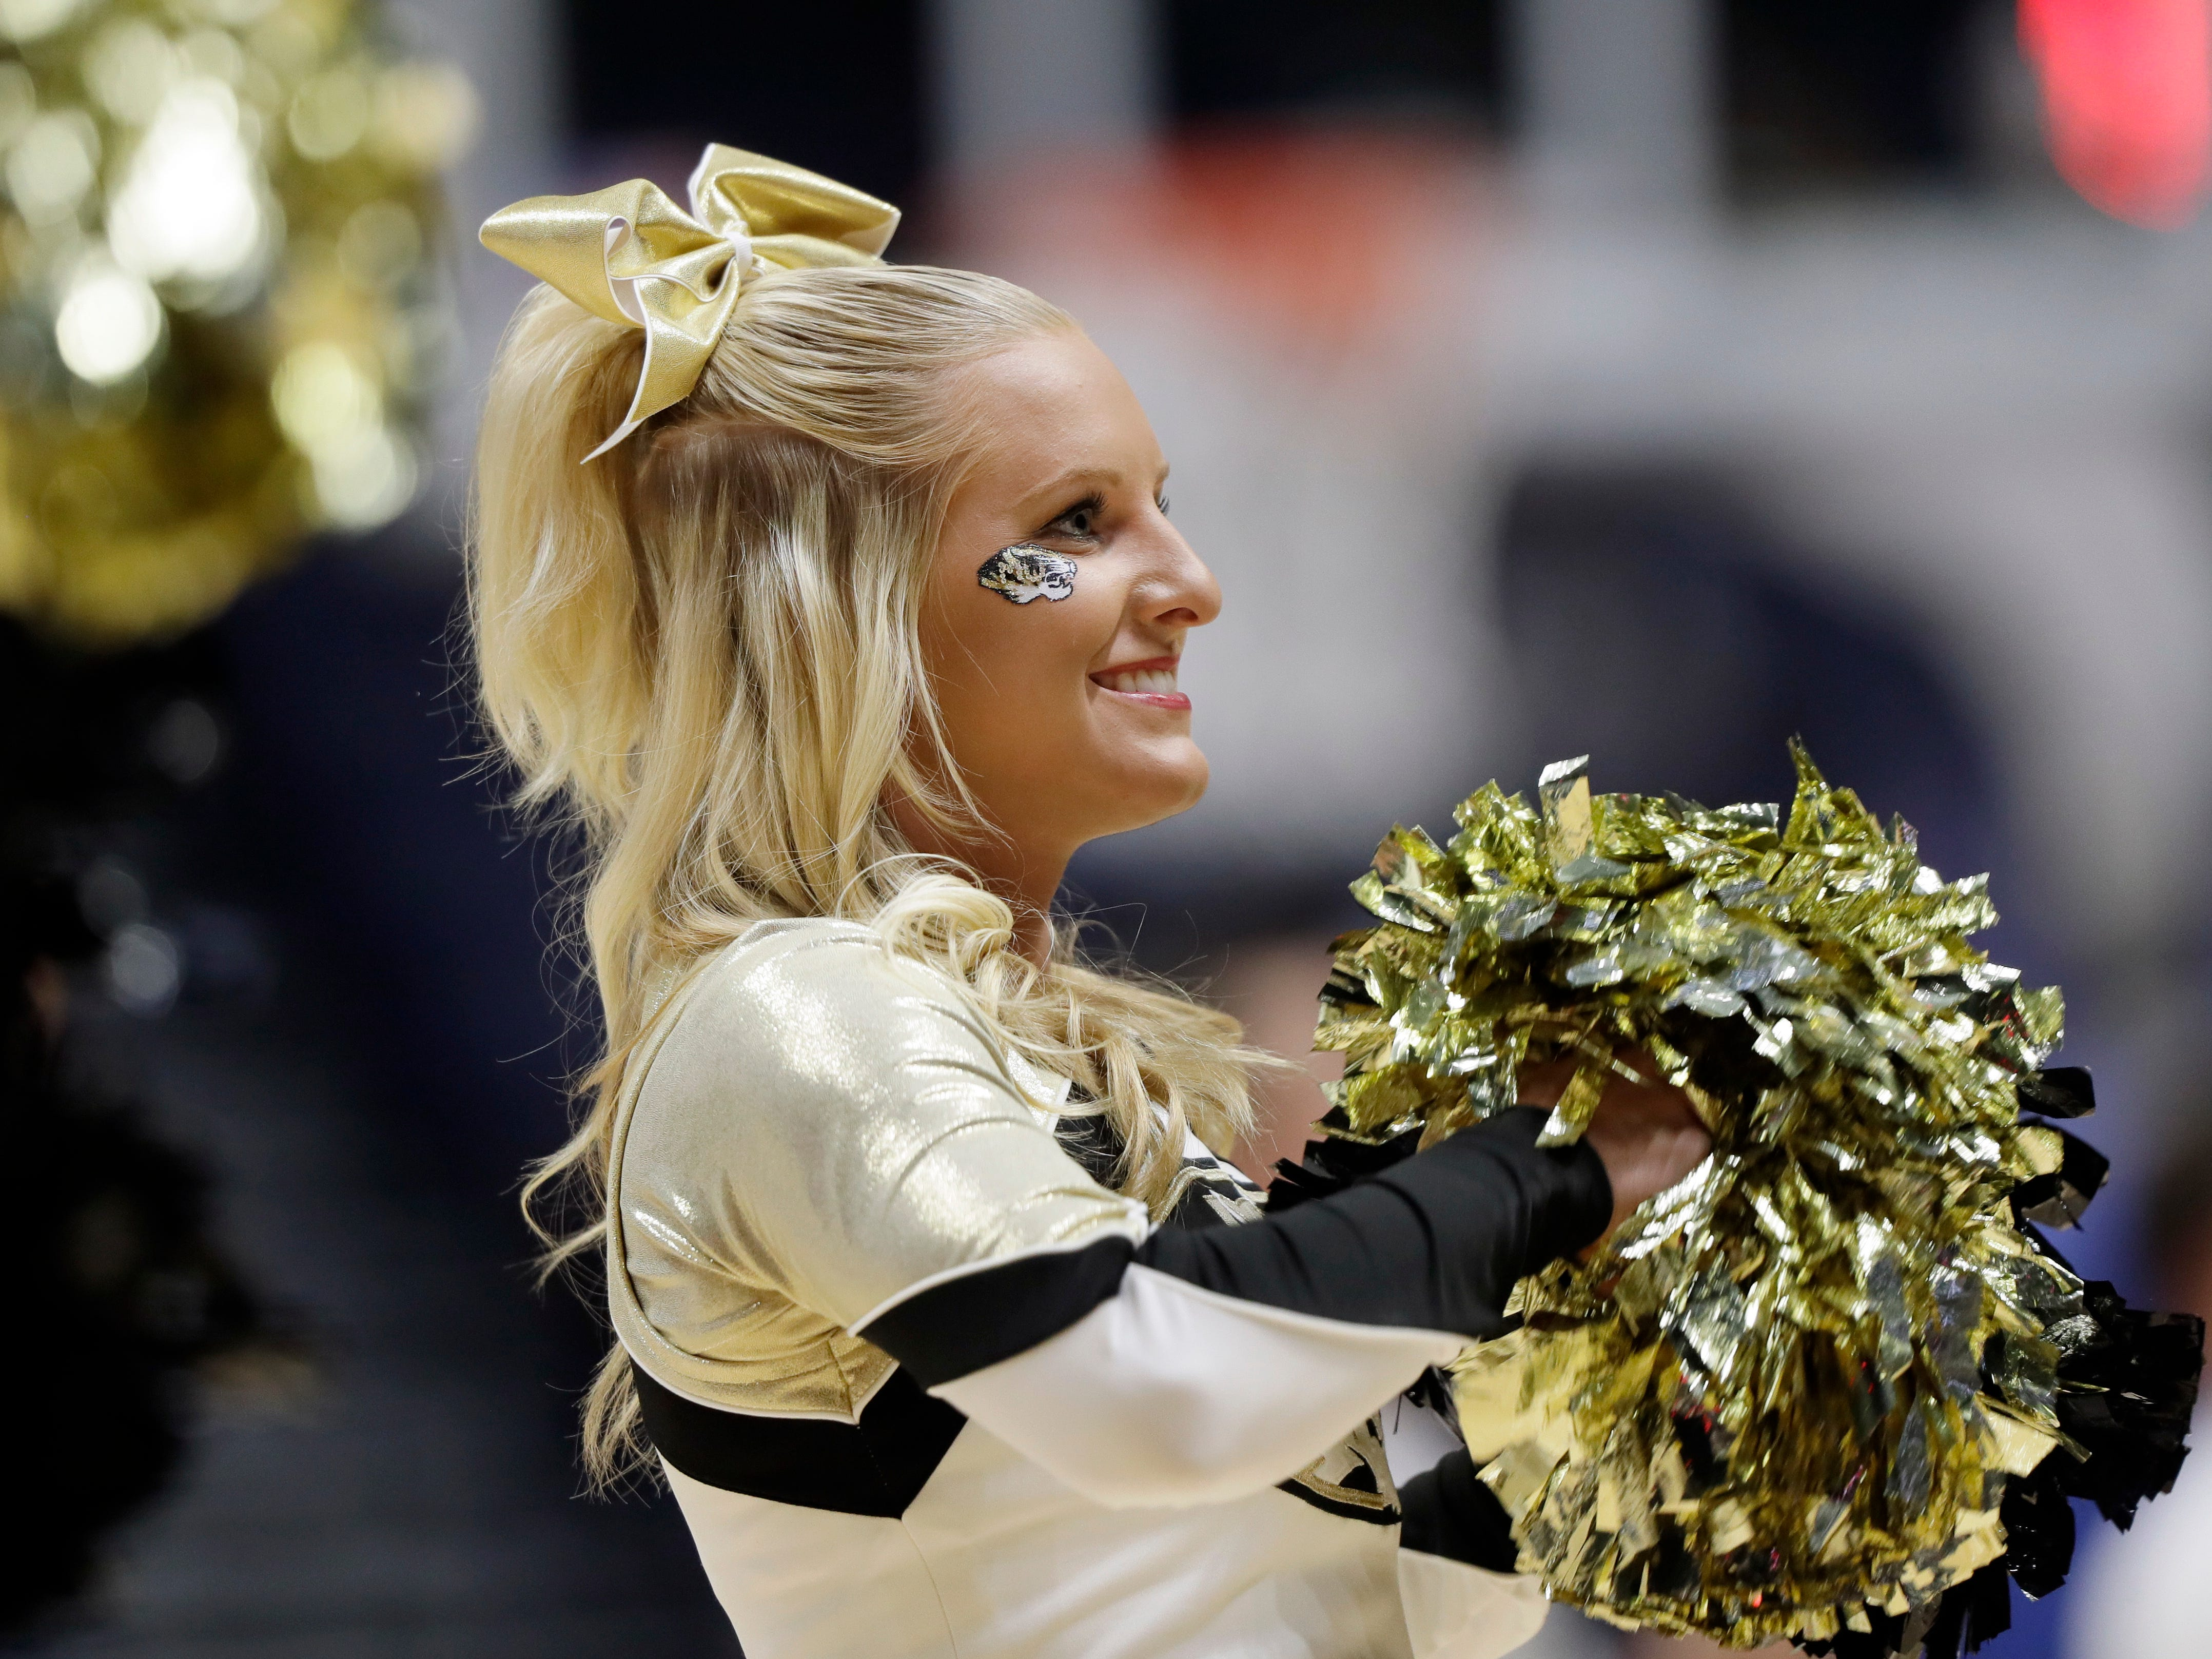 A Missouri cheerleader performs during the second half of an NCAA college basketball game against Auburn at the Southeastern Conference tournament Wednesday, March 8, 2017, in Nashville, Tenn. (AP Photo/Wade Payne)